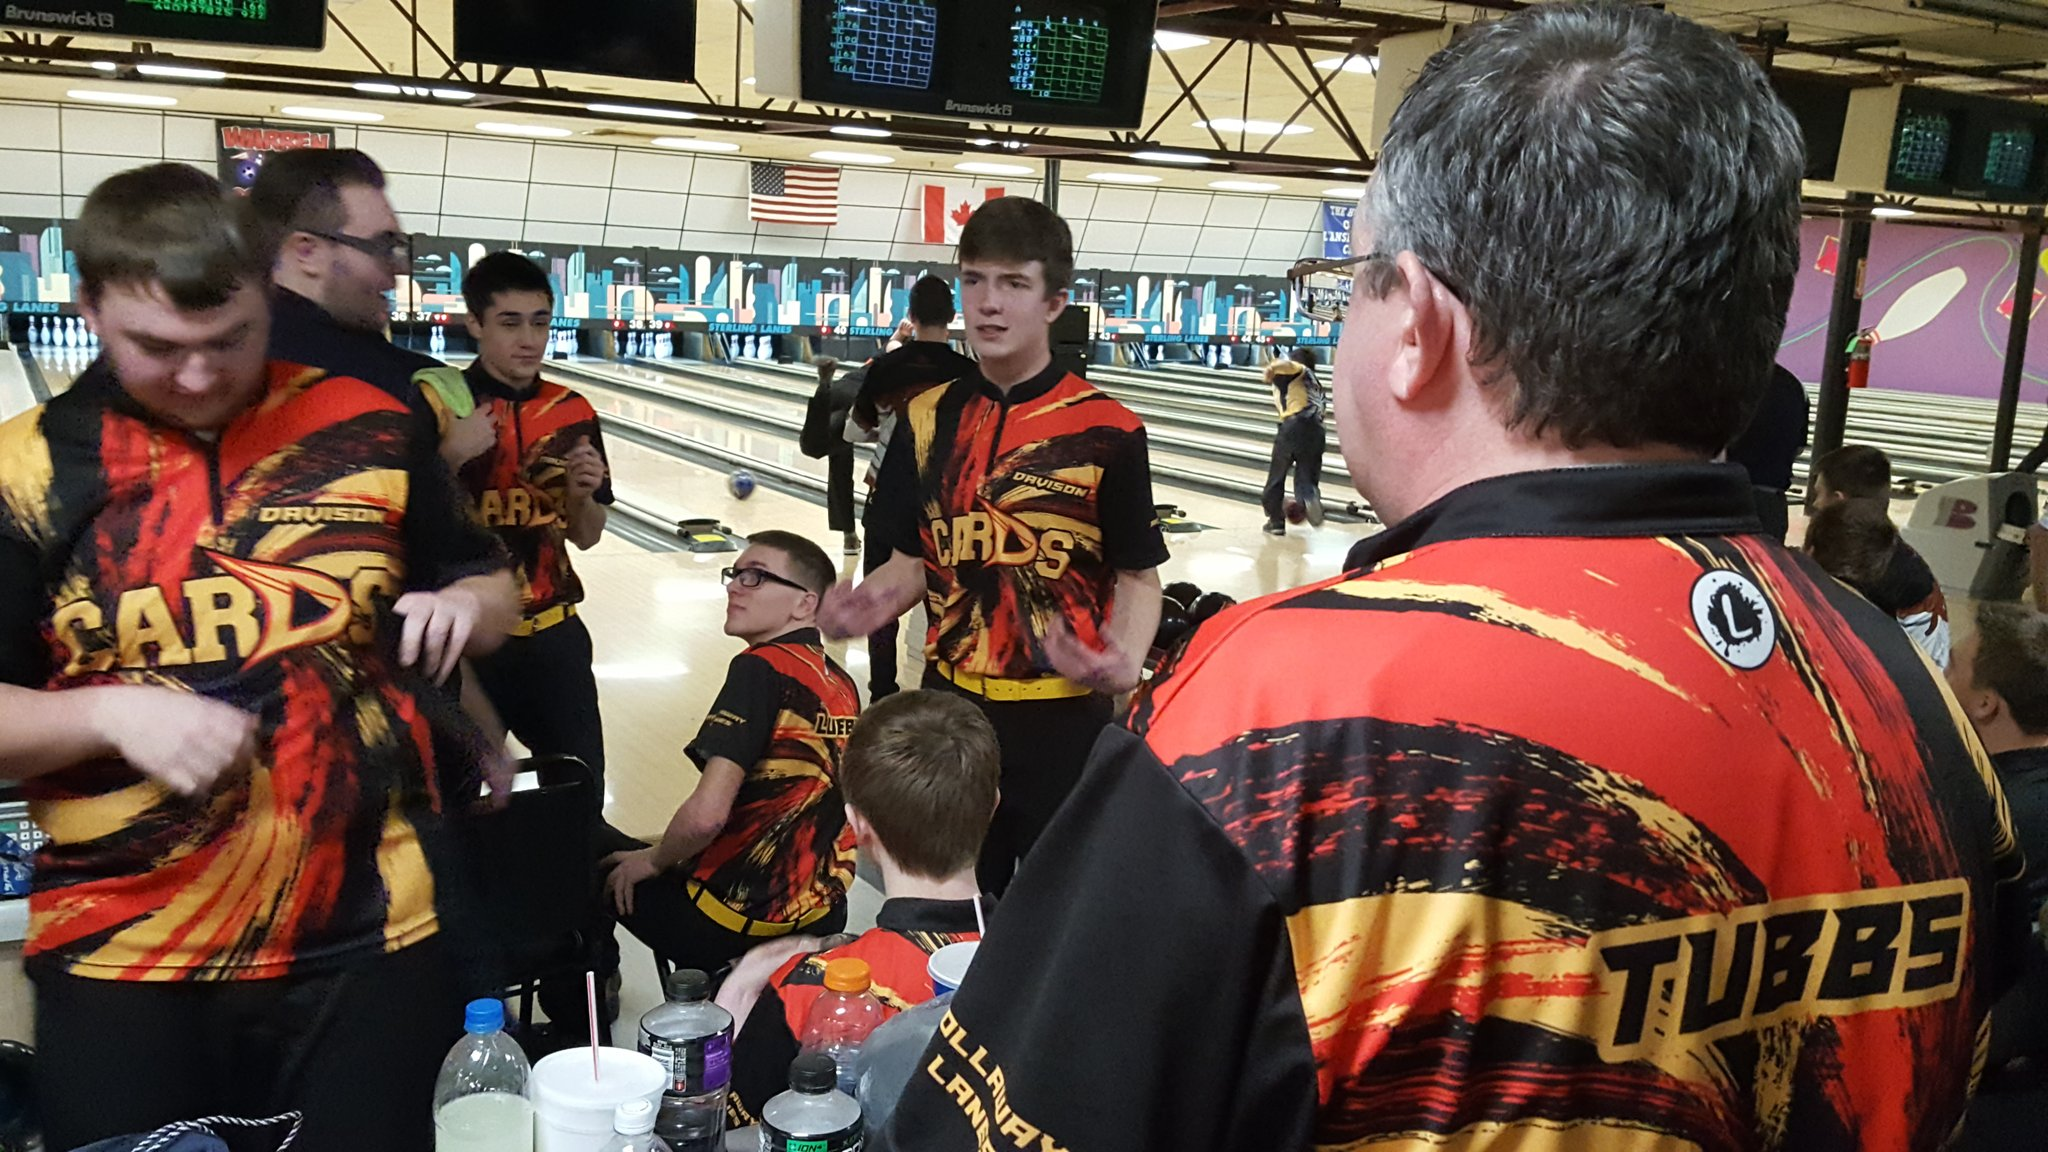 Both girls and boys bowling on track to advance to quarterfinals, with one game left https://t.co/bAdR6VJdrg